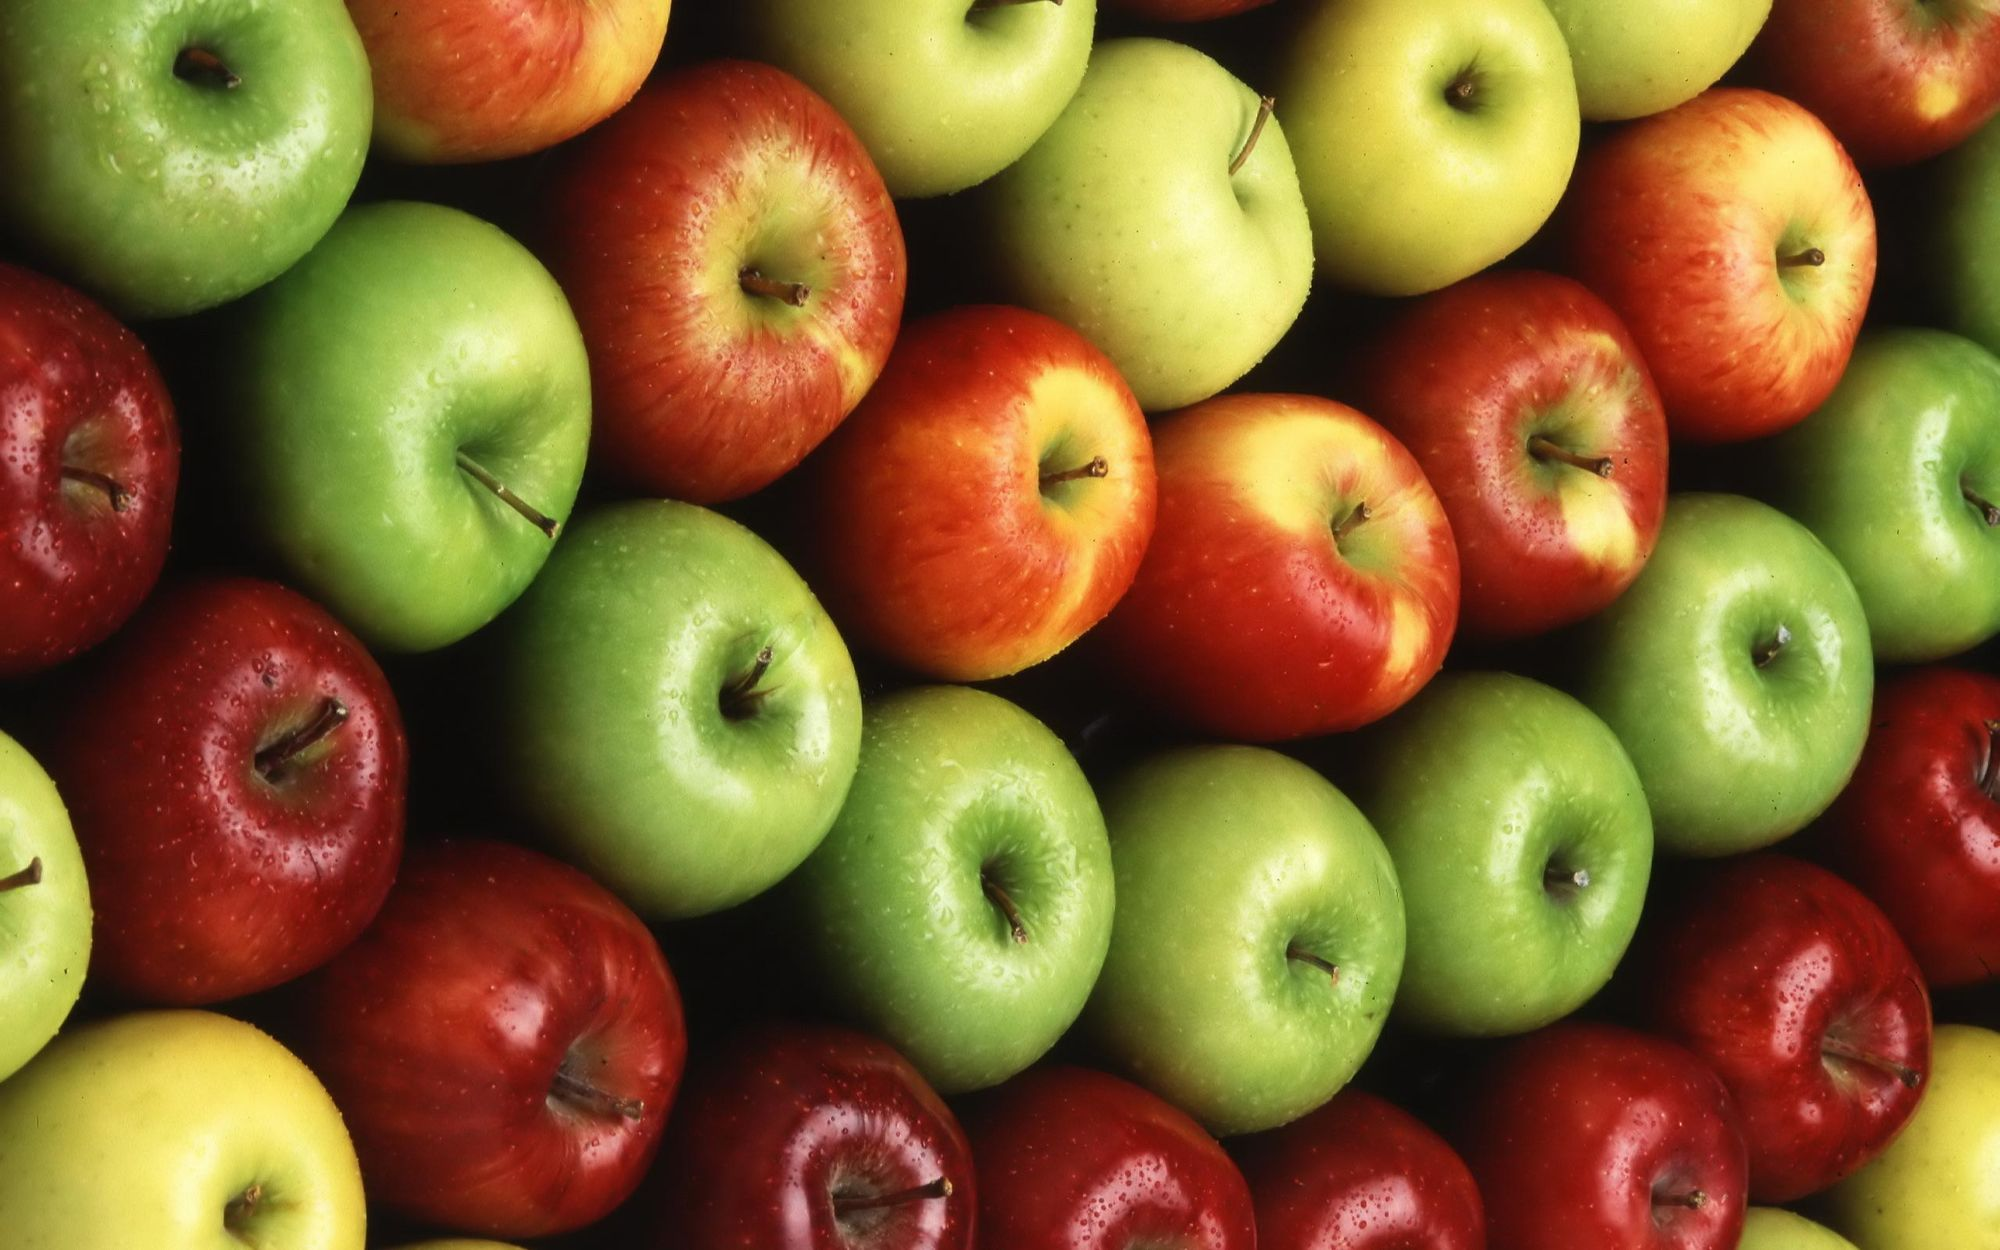 Biodiversity in the market - Apple diversity